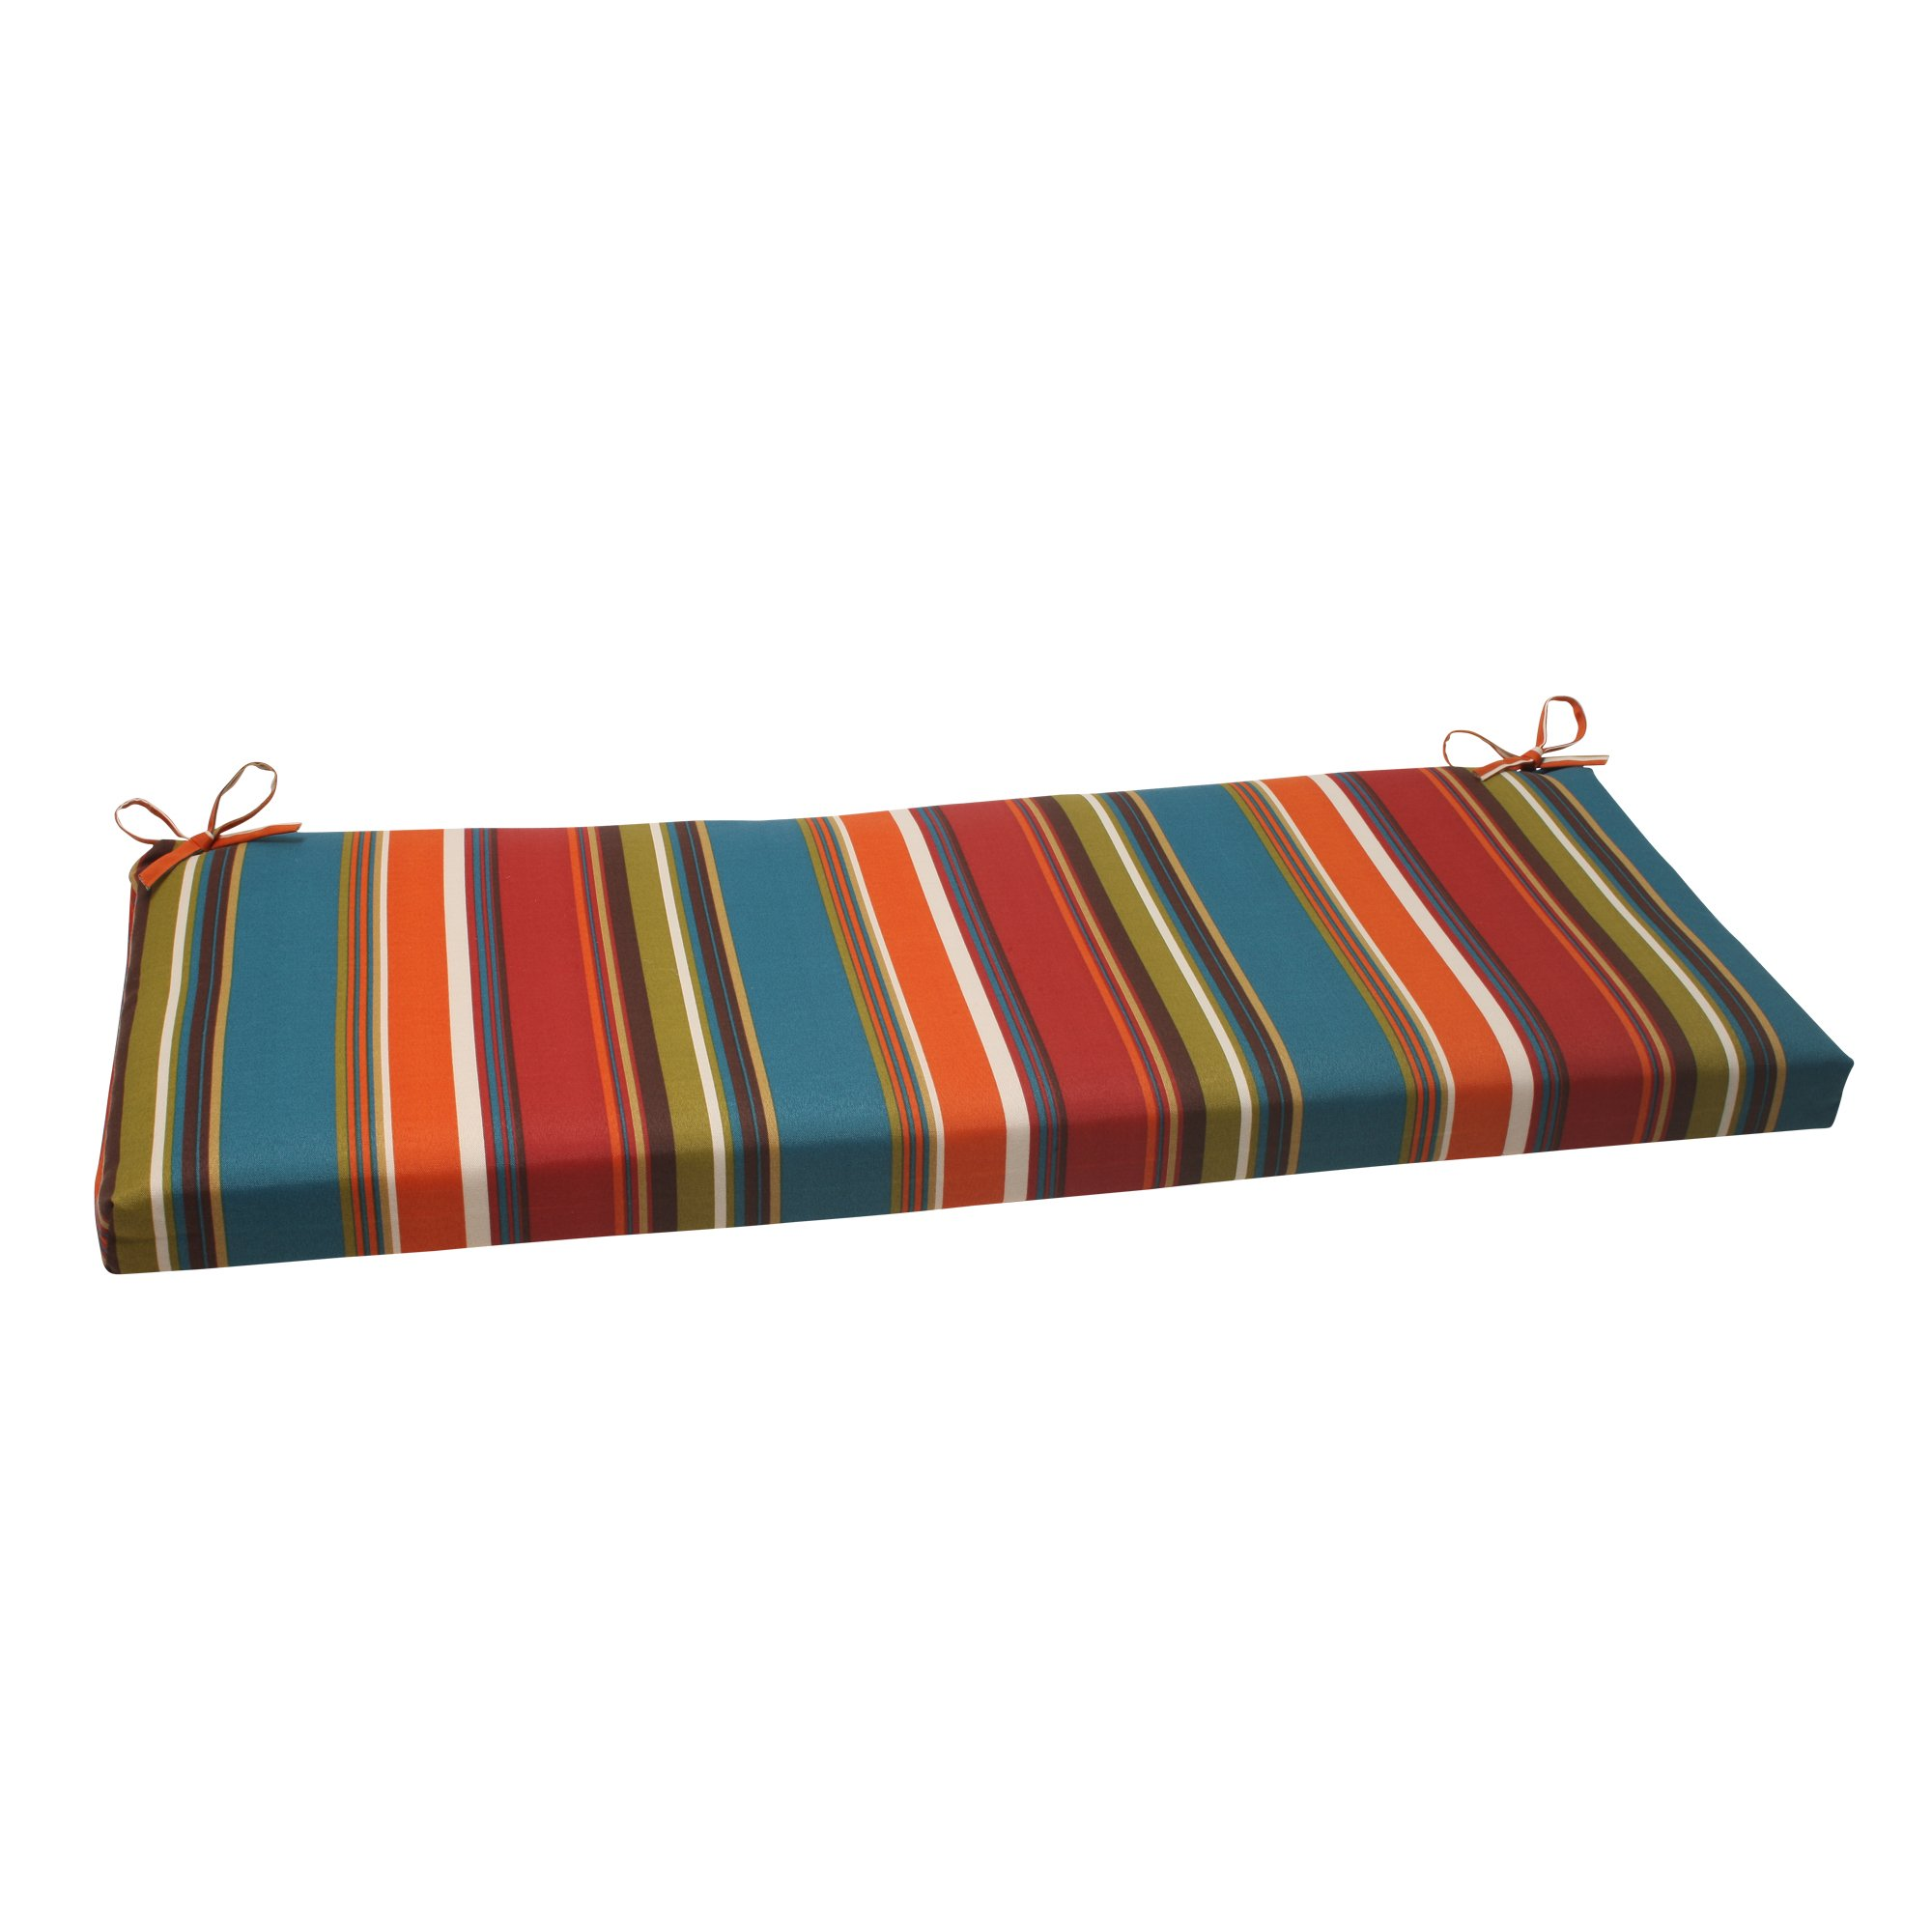 Pillow Perfect Indoor/Outdoor Westport Bench Cushion by Pillow Perfect